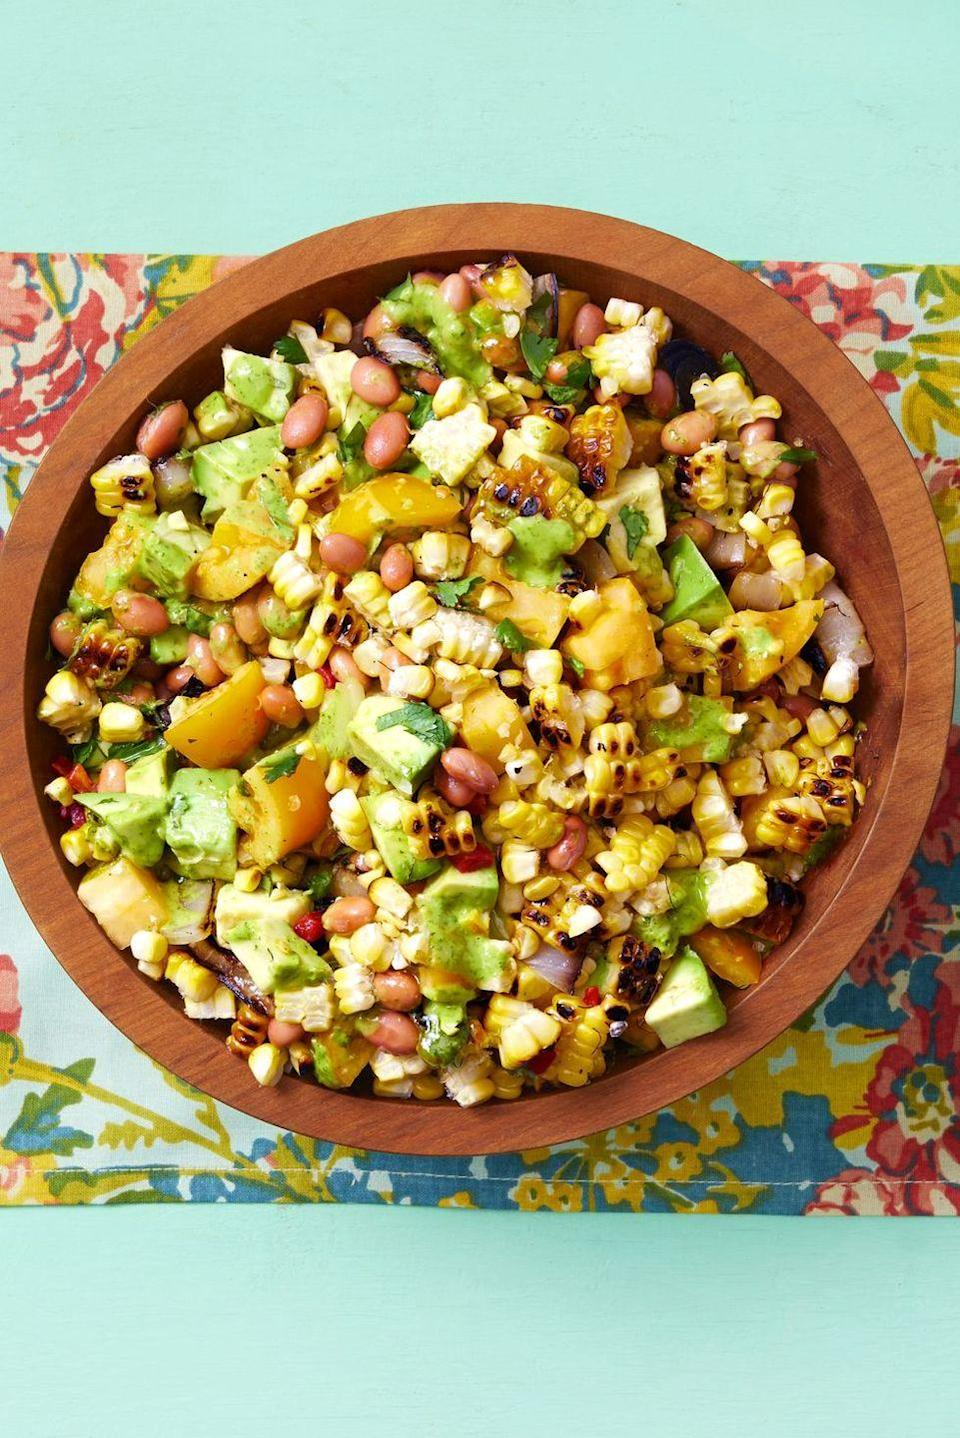 "<p>When you have a plate filled with grilled meats, you need some color to brighten things up. This corn salad will do the trick— it's a fun addition to any BBQ menu. </p><p><a href=""https://www.thepioneerwoman.com/food-cooking/recipes/a32252731/grilled-corn-salad-with-cilantro-vinaigrette/"" rel=""nofollow noopener"" target=""_blank"" data-ylk=""slk:Get Ree's recipe."" class=""link rapid-noclick-resp""><strong>Get Ree's recipe.</strong></a></p><p><a class=""link rapid-noclick-resp"" href=""https://go.redirectingat.com?id=74968X1596630&url=https%3A%2F%2Fwww.walmart.com%2Fsearch%2F%3Fquery%3Dblender&sref=https%3A%2F%2Fwww.thepioneerwoman.com%2Ffood-cooking%2Fmeals-menus%2Fg36109352%2Ffathers-day-dinner-recipes%2F"" rel=""nofollow noopener"" target=""_blank"" data-ylk=""slk:SHOP BLENDERS"">SHOP BLENDERS</a></p>"